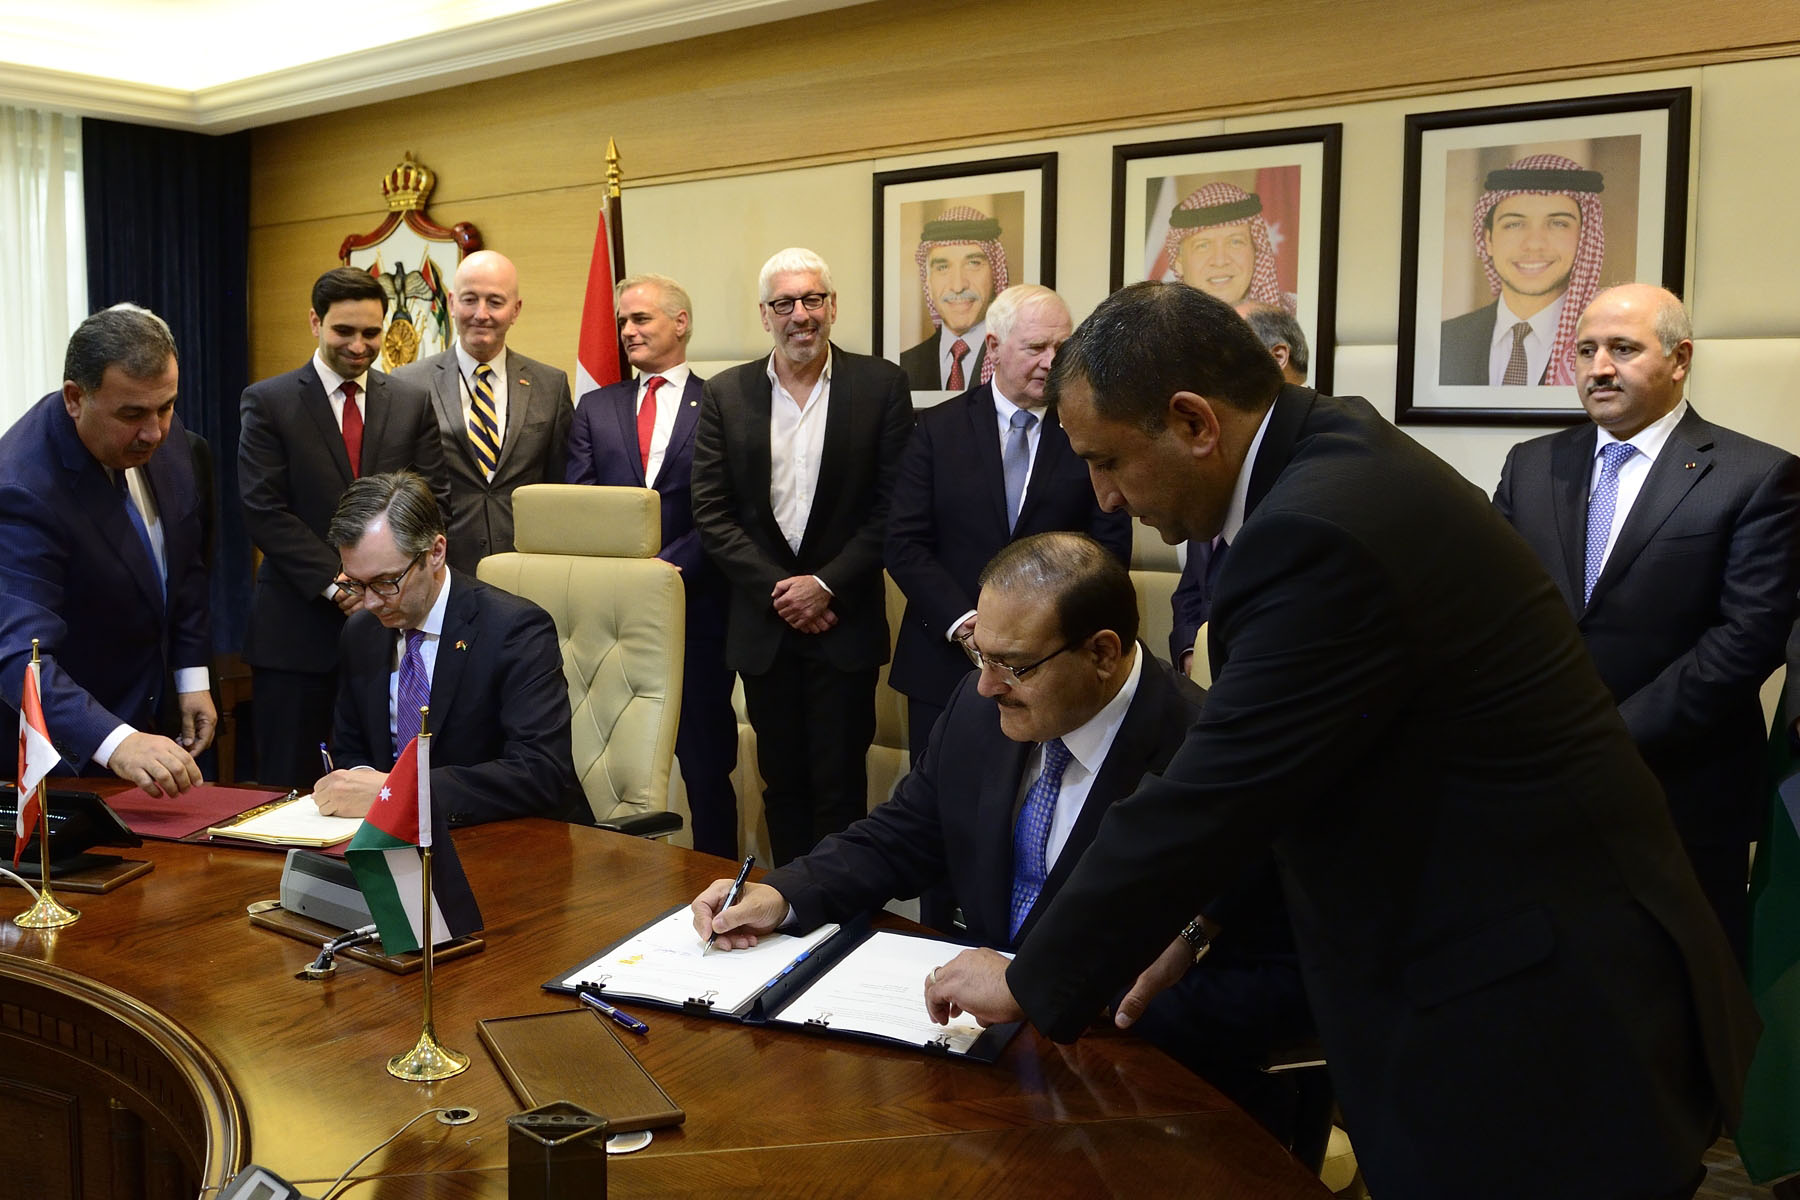 Following the meeting, the Governor General, along with delegates Niv Fichman and Paul Gross, witnessed the signing of an Audiovisual Coproduction Agreement between Canada and Jordan.